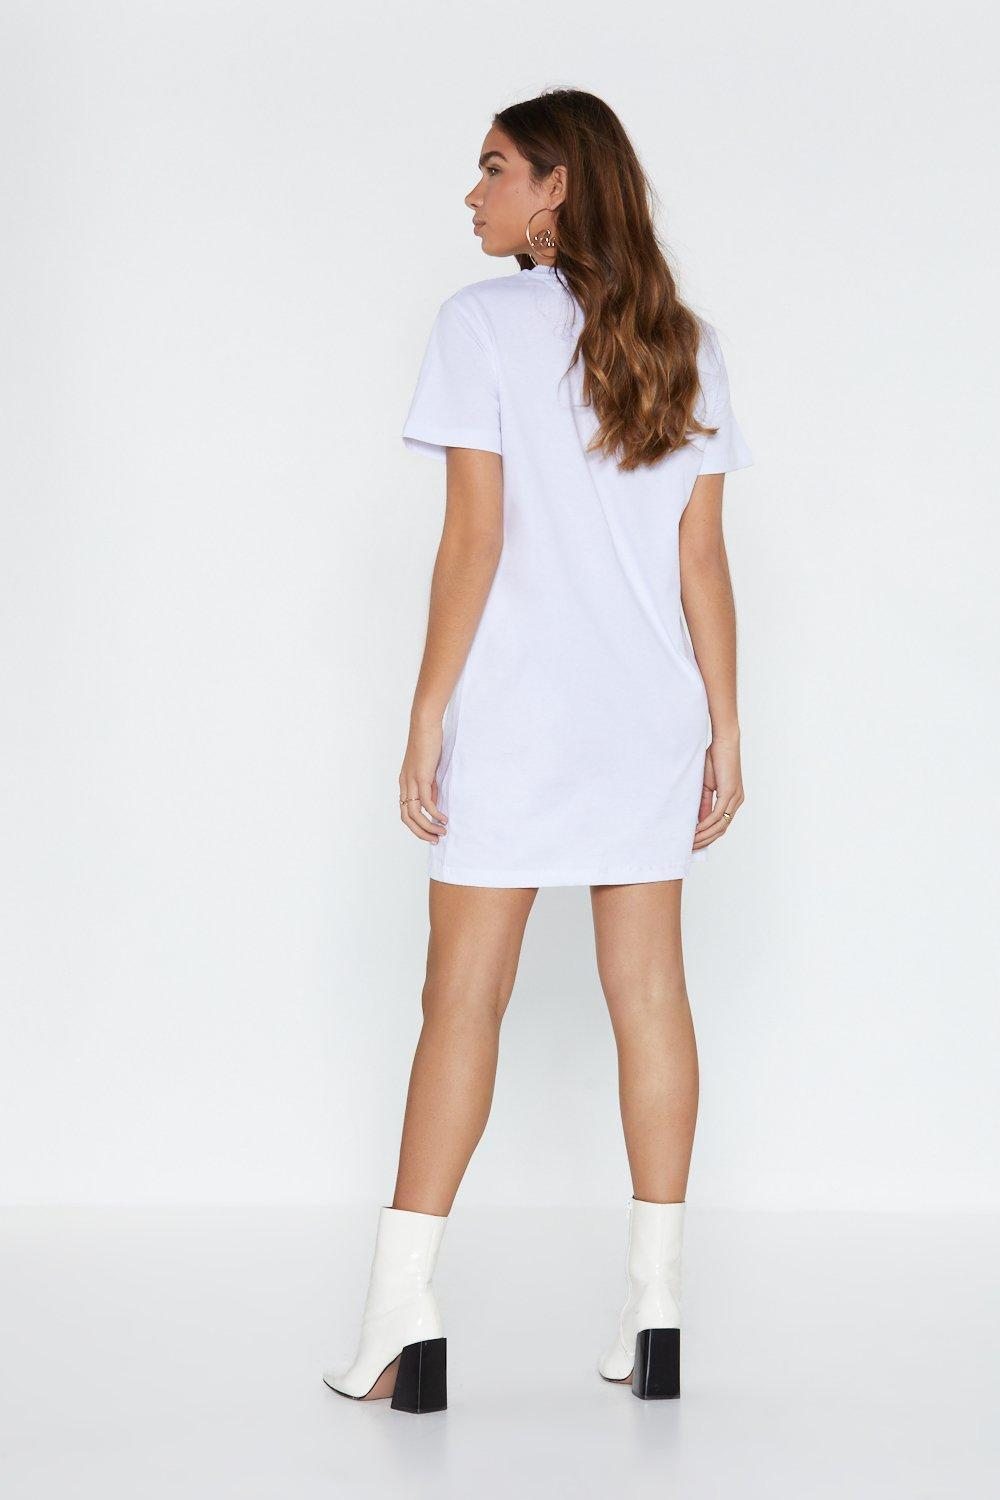 e7a1fb81490 ... a Cherub Tee Dress. Hover to zoom